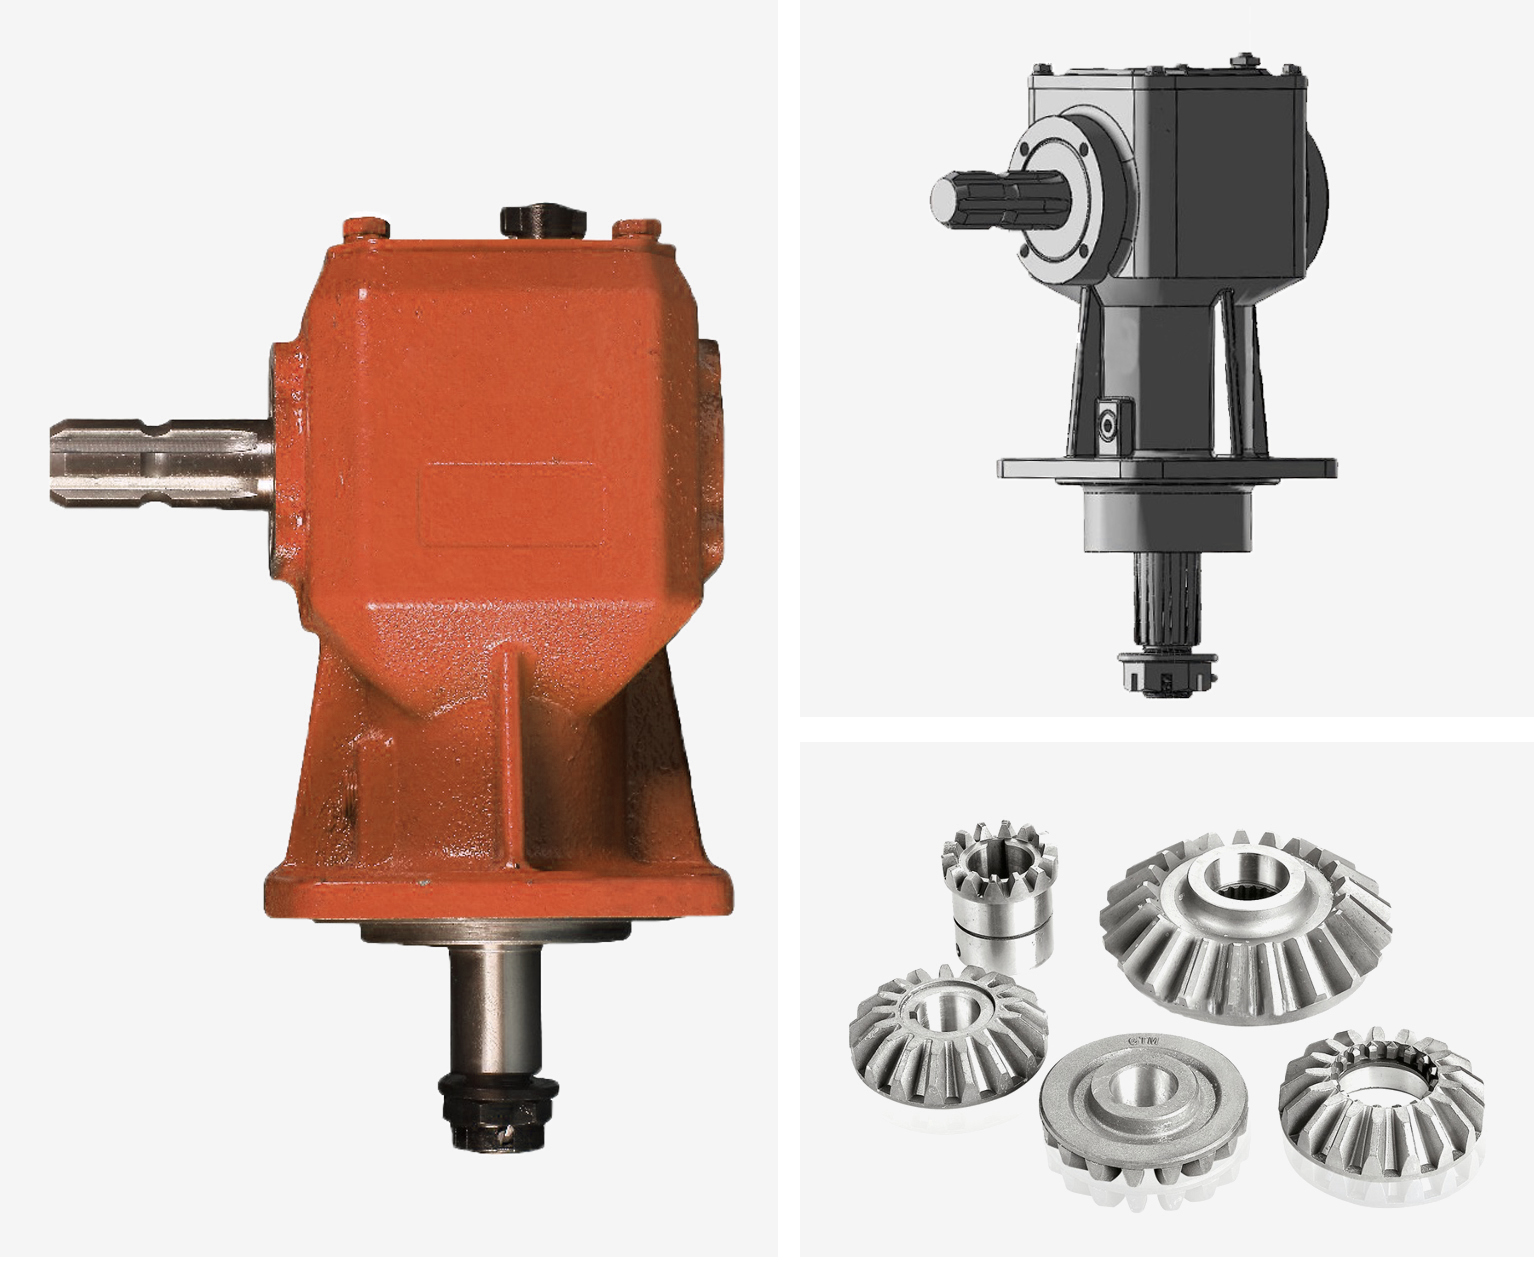 Rotary lawn mower gearbox